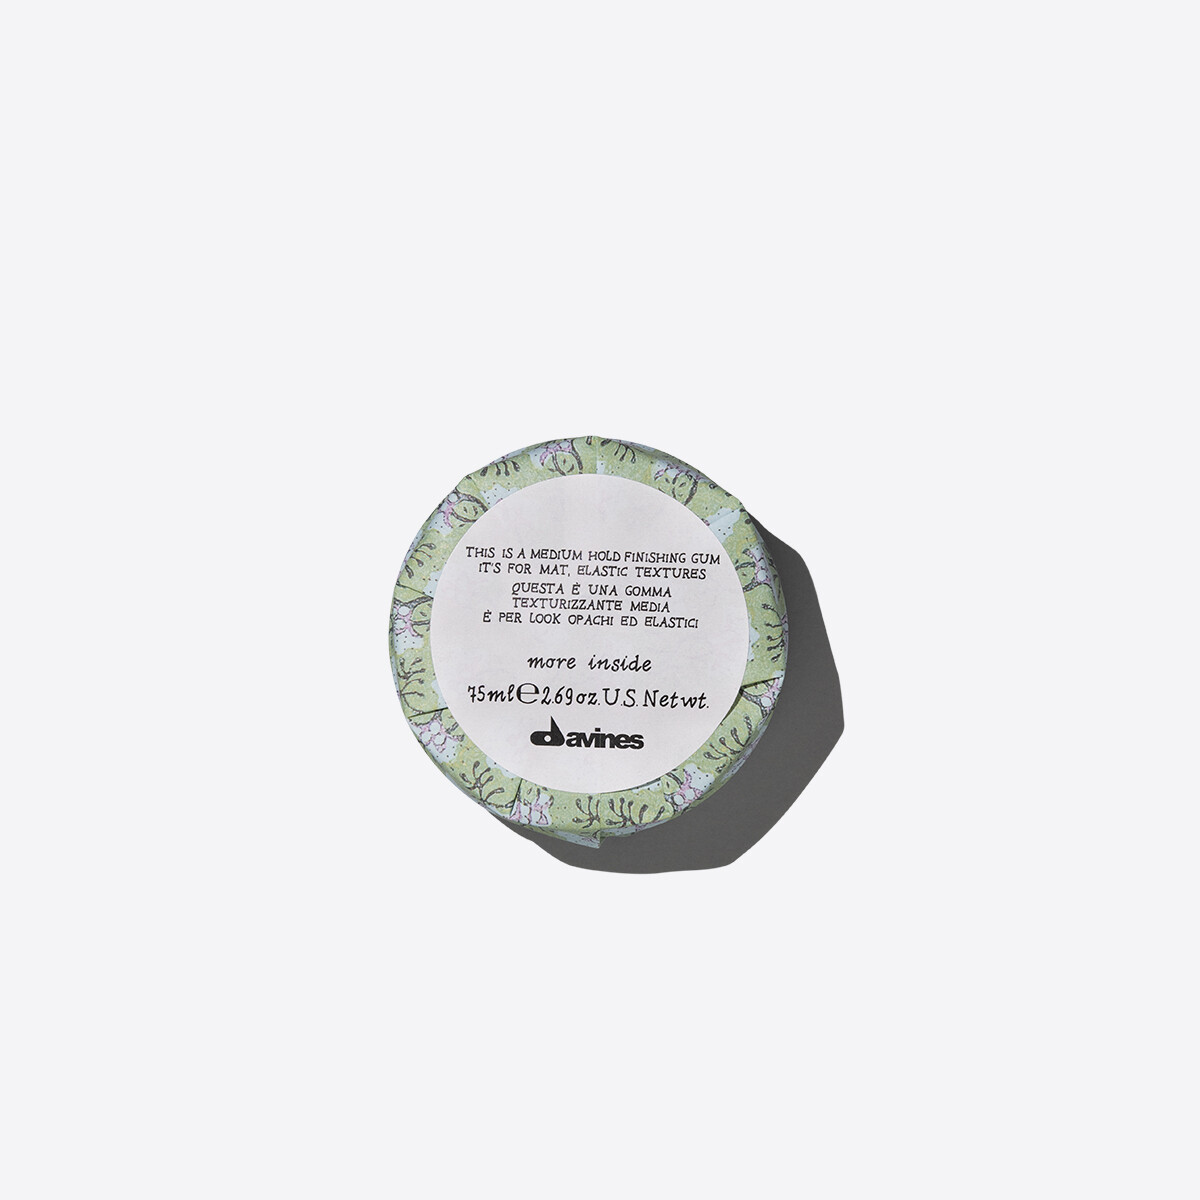 Davines This is a Medium Hold Finishing Gum 75 ml | Fijación Media